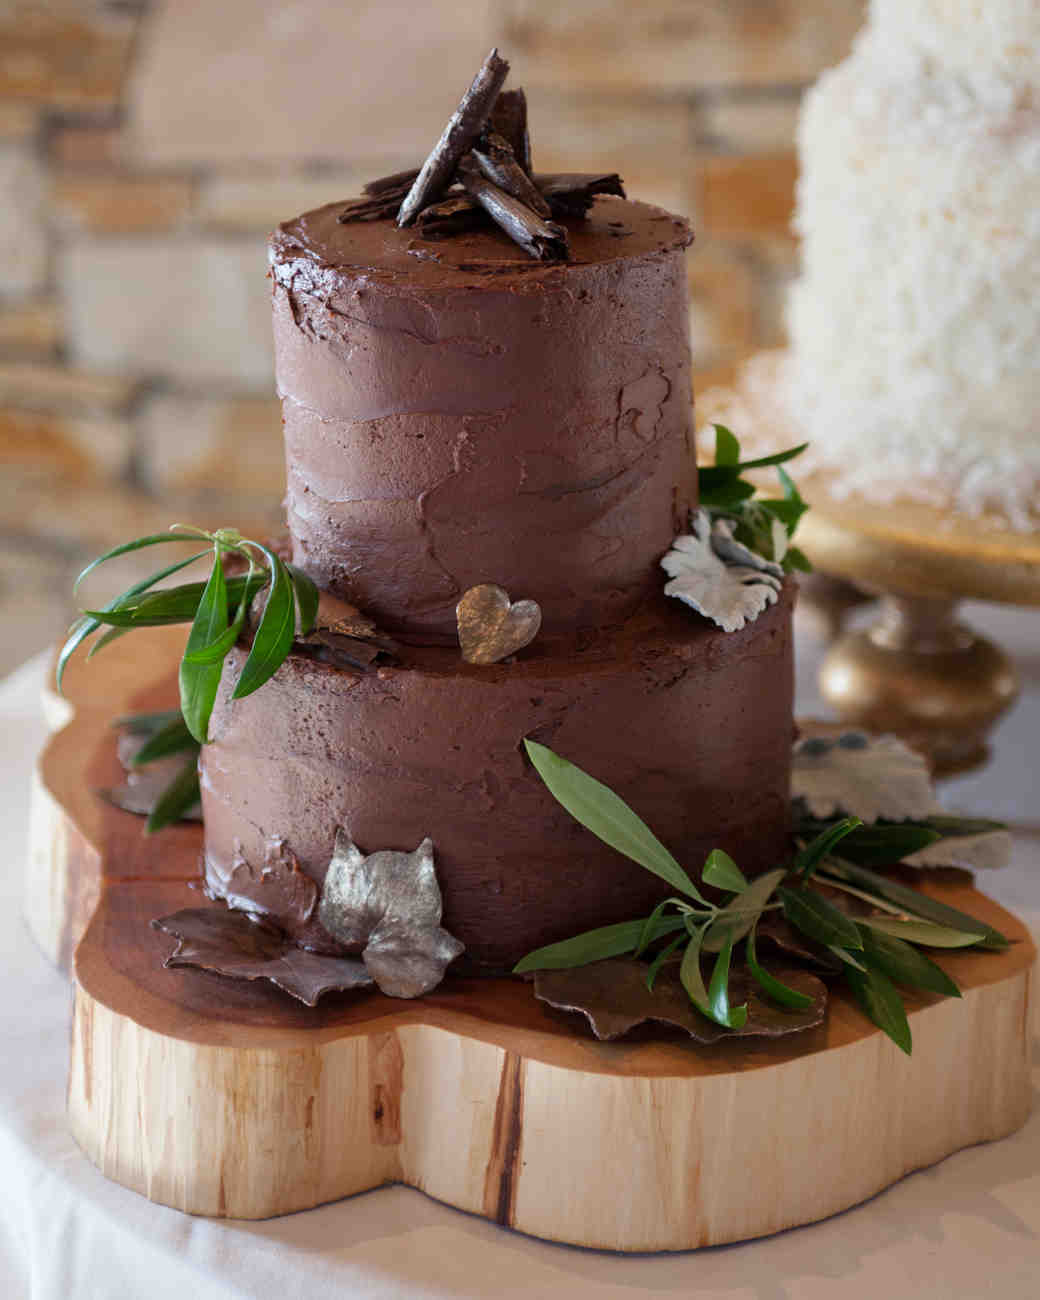 Fun Wedding Cake Ideas: 20 Unique Groom's Cake Ideas